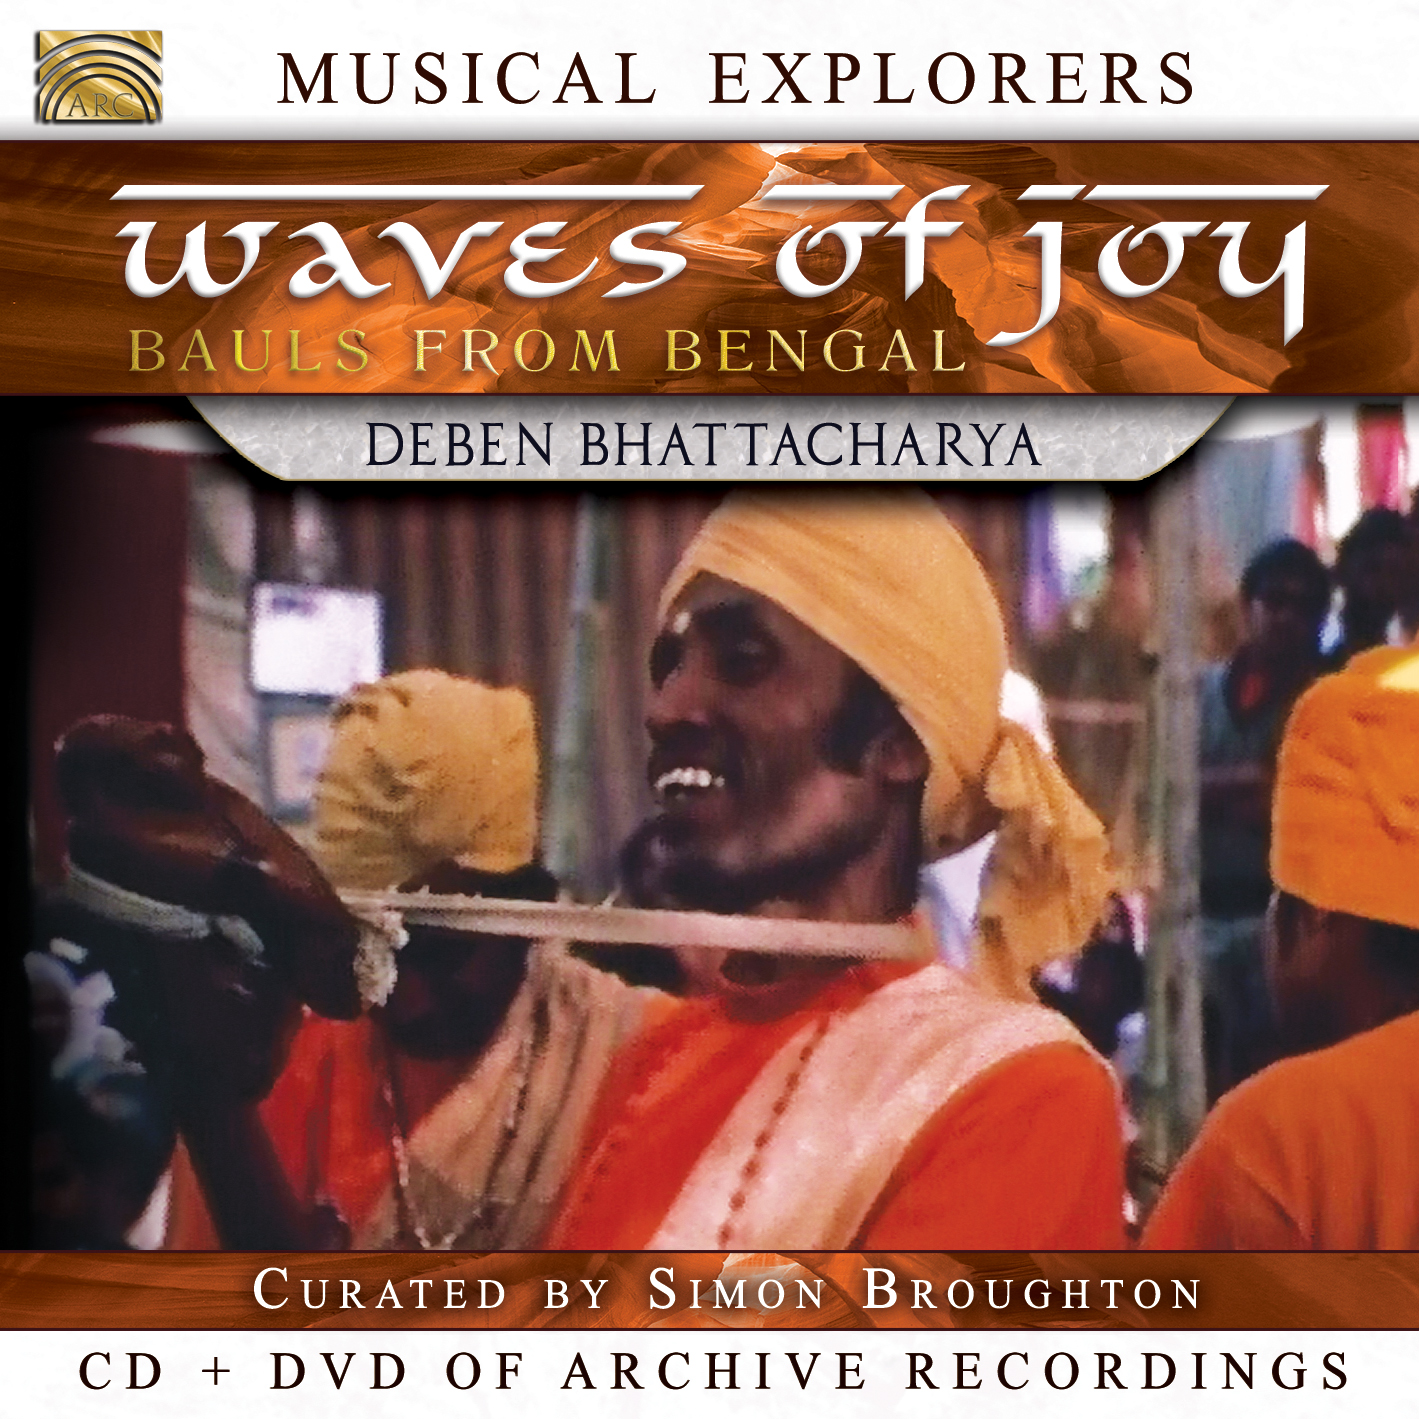 EUCD2791 Musical Explorers - Waves of Joy - Bauls of Bengal